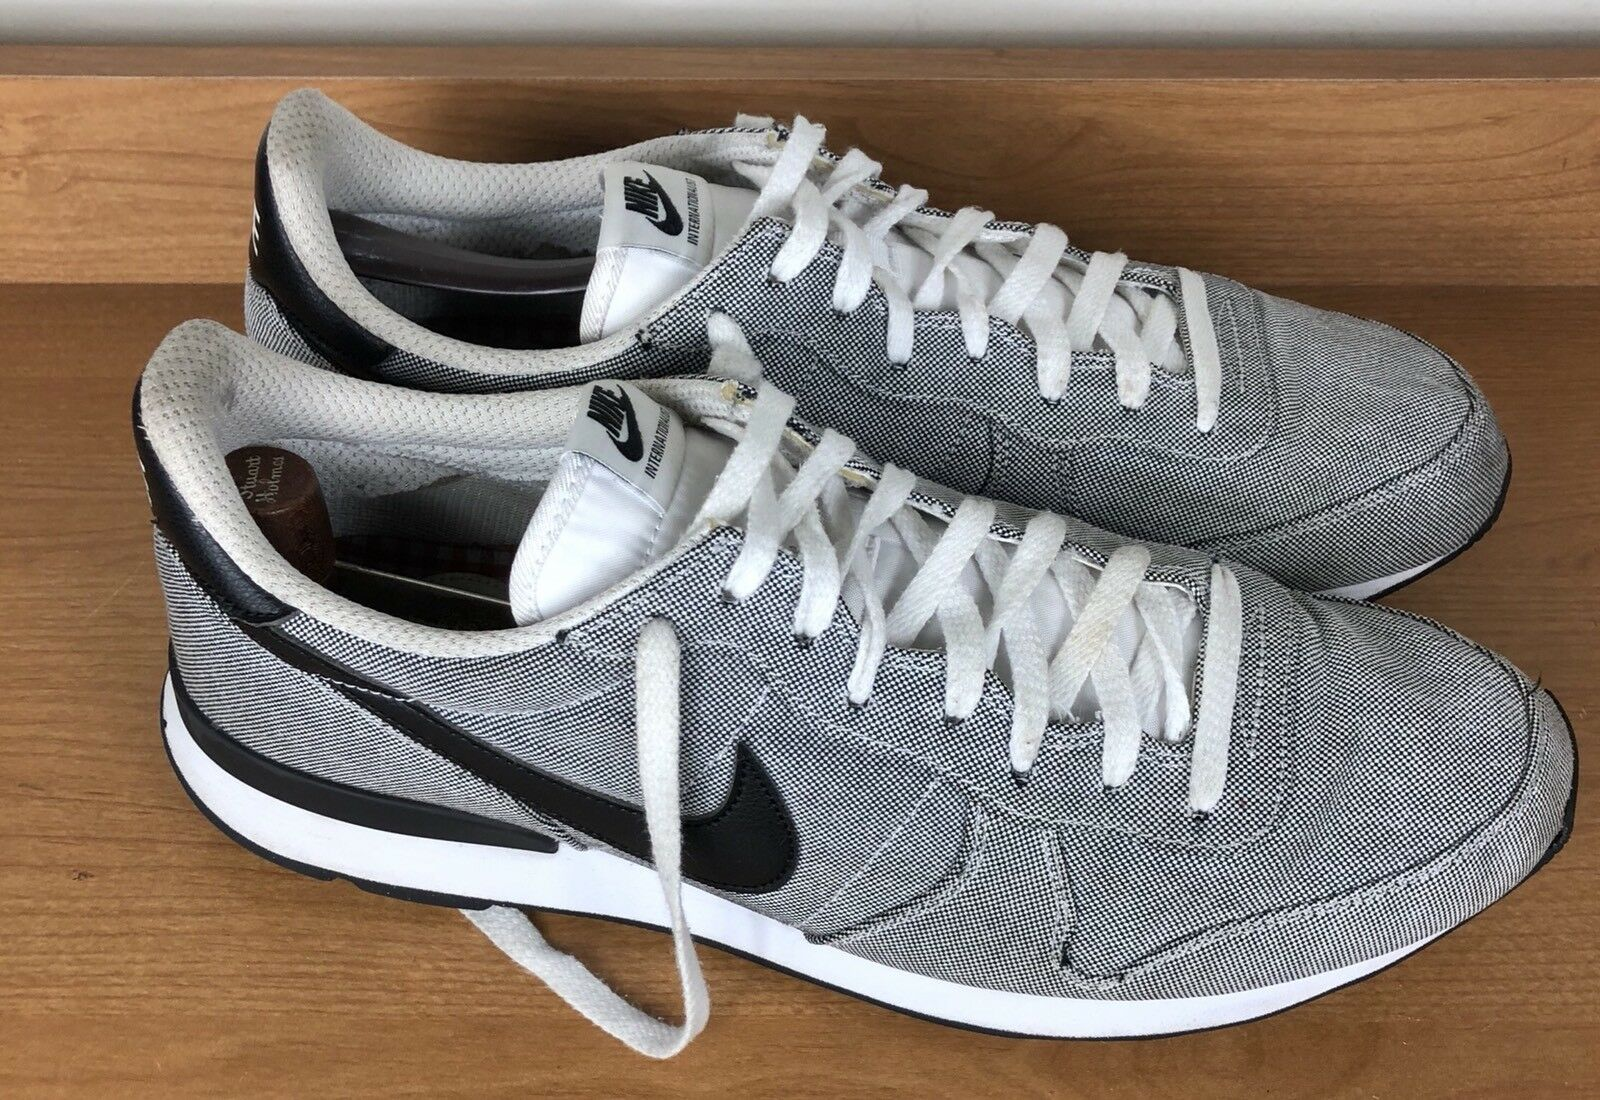 Nike Internationalist Gray Fabric Athlete Running Shoes Men's Comfortable Comfortable and good-looking